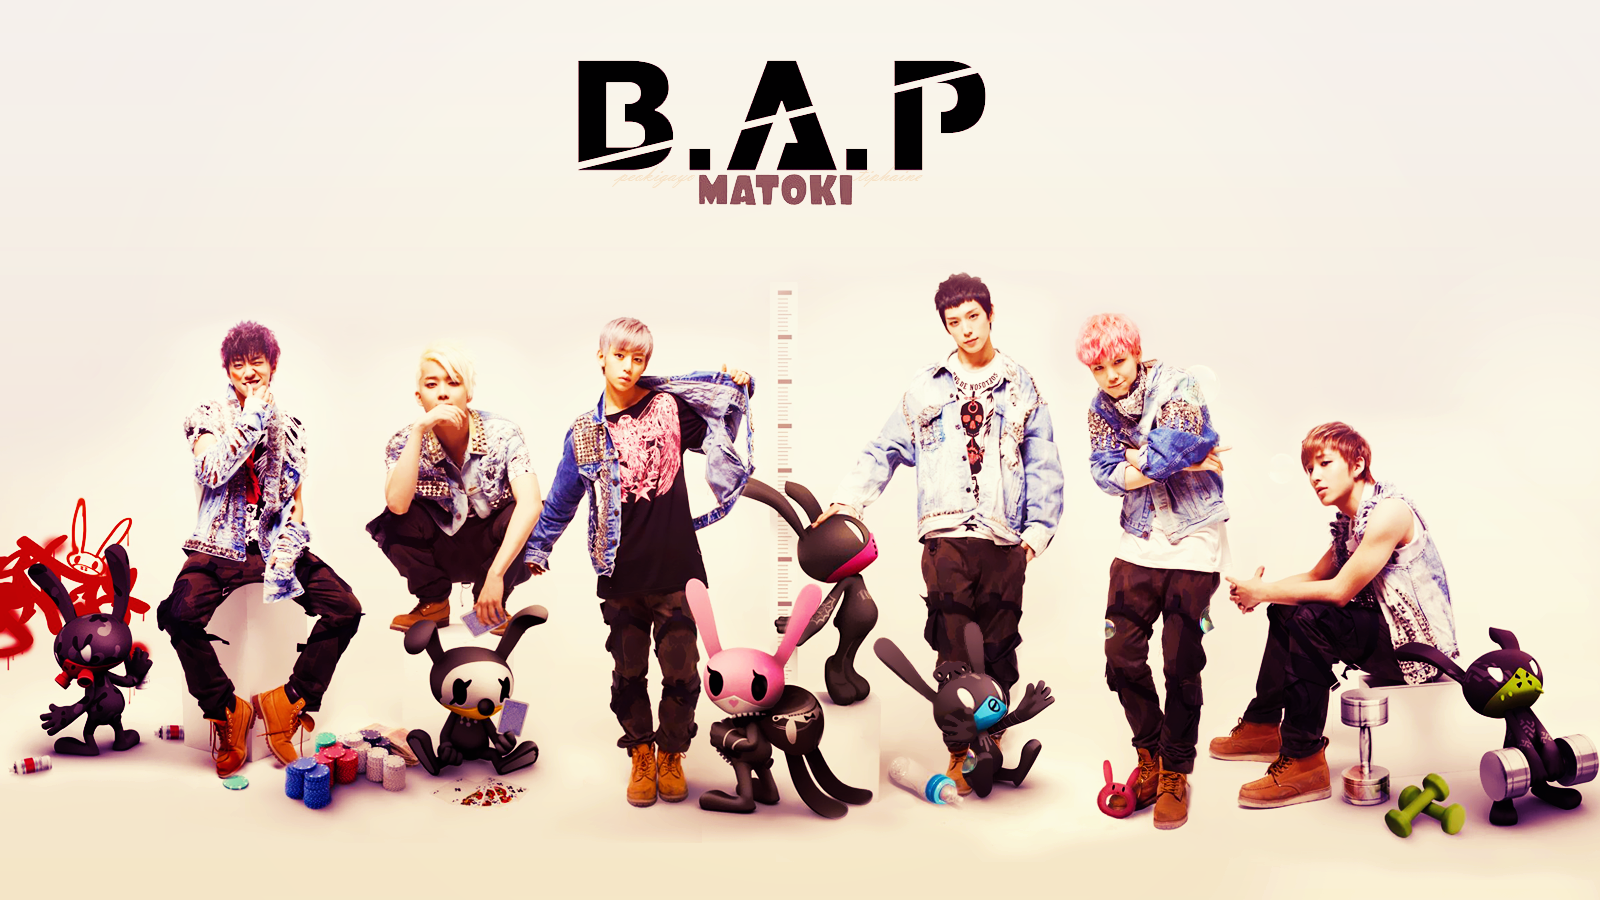 bap matoki wallpaper - photo #5